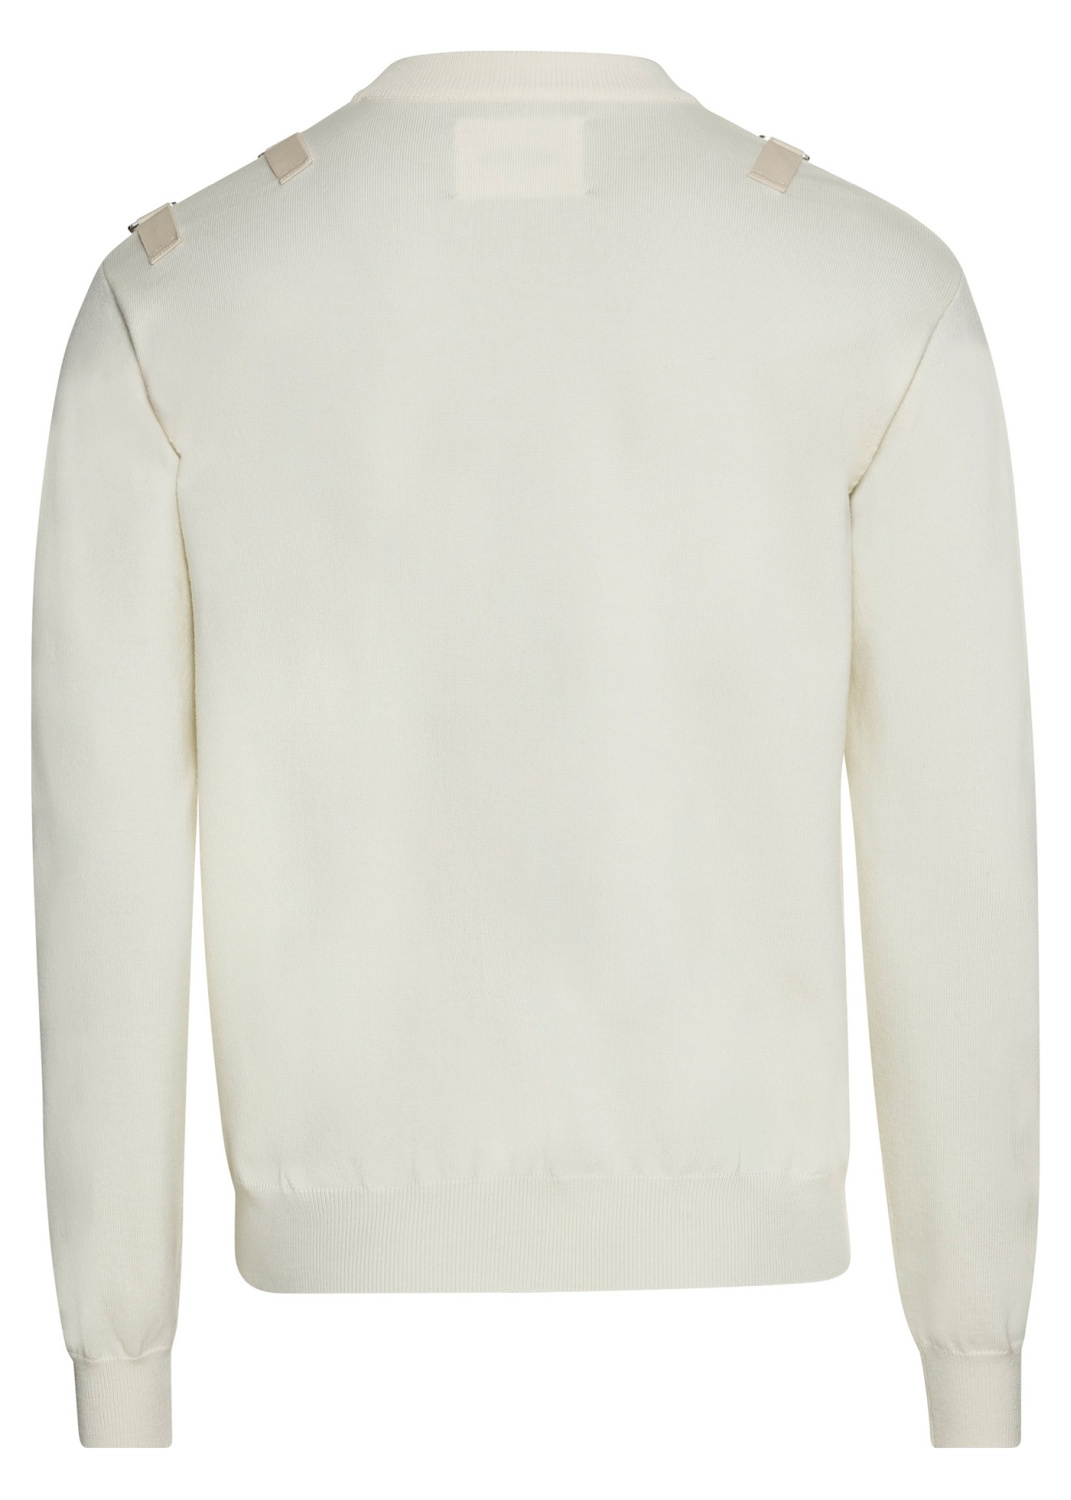 SWEATER CN LS image number 1